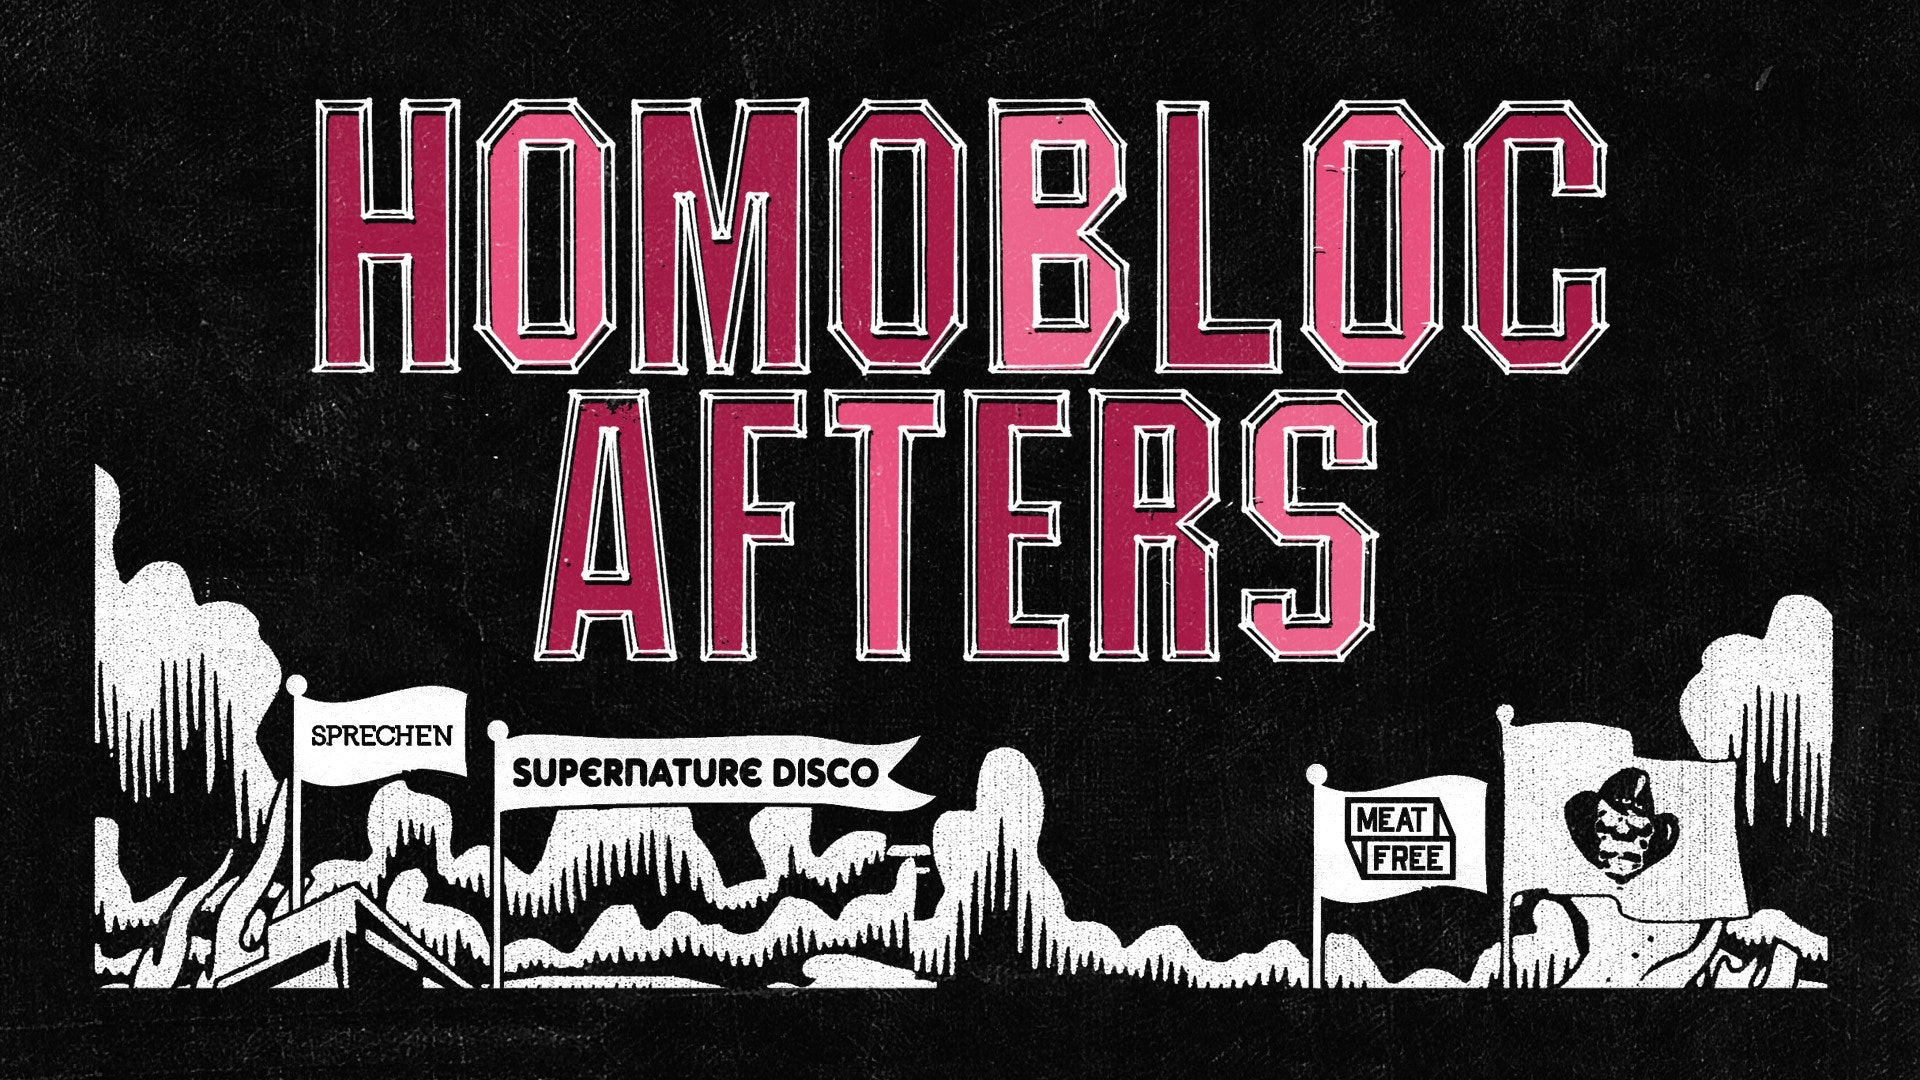 HOMOBLOC AFTERS